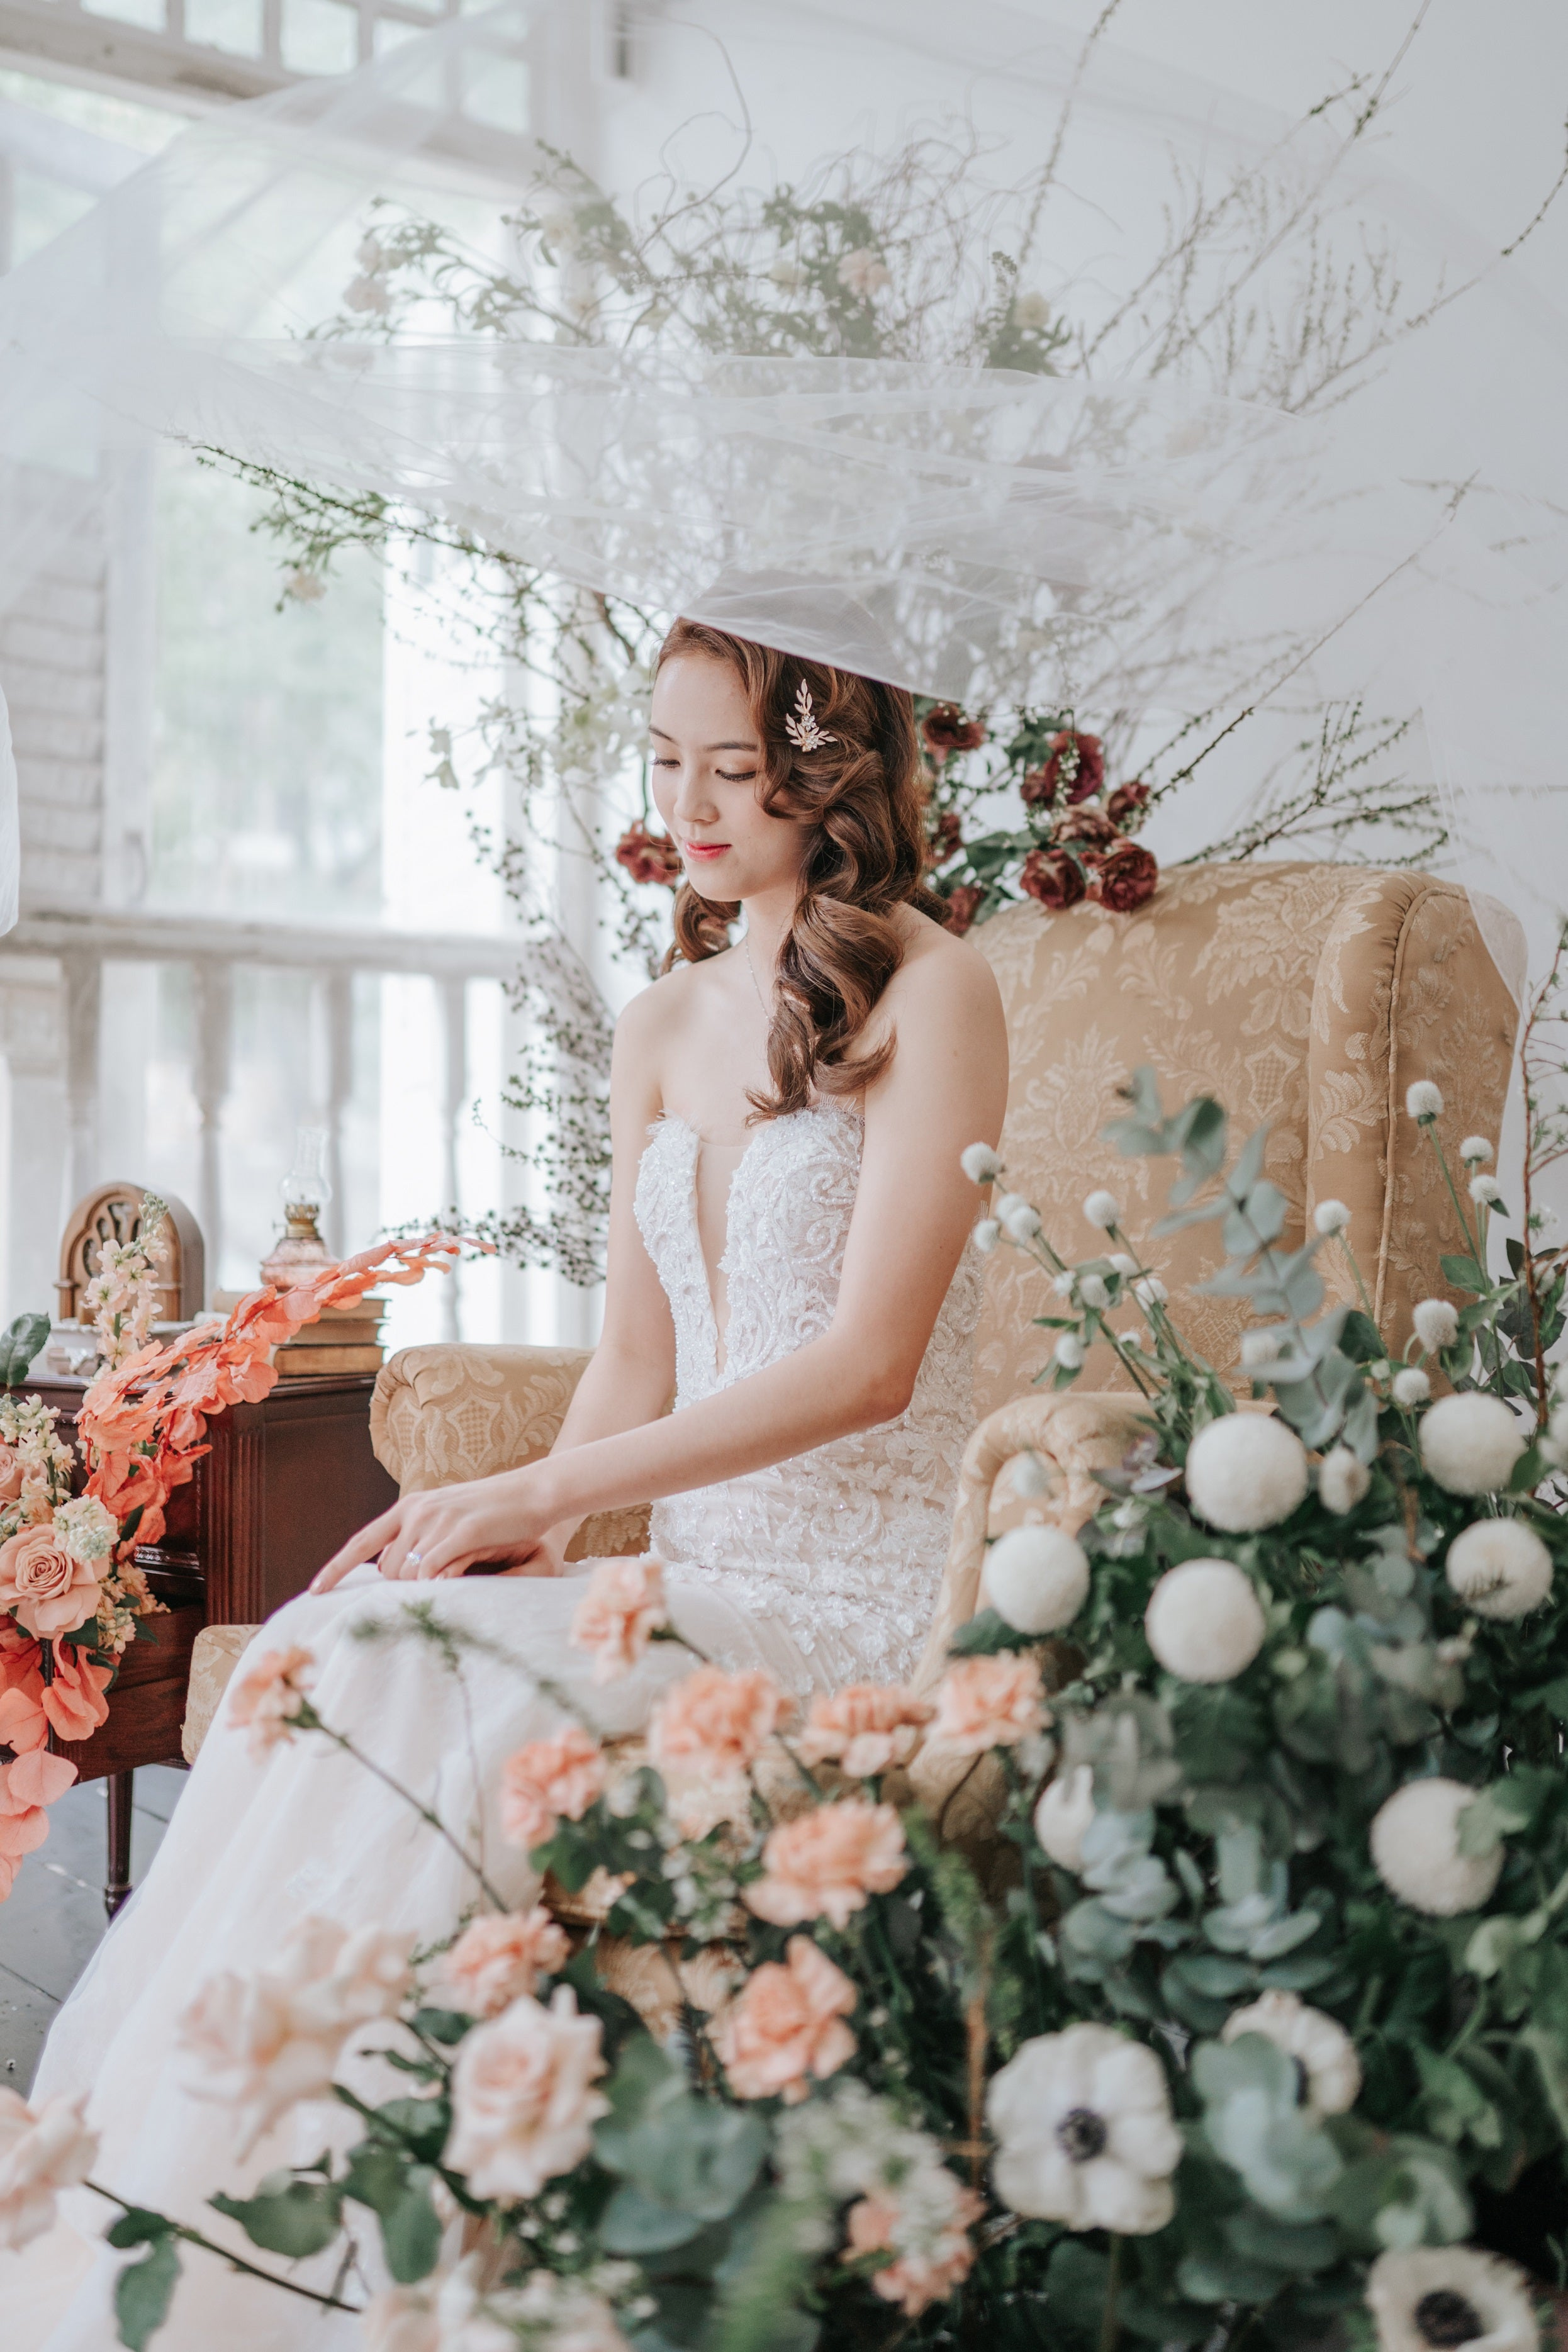 Bride sitting in a gold armchair surrounded by flowers. Wedding veil drifting abovehead